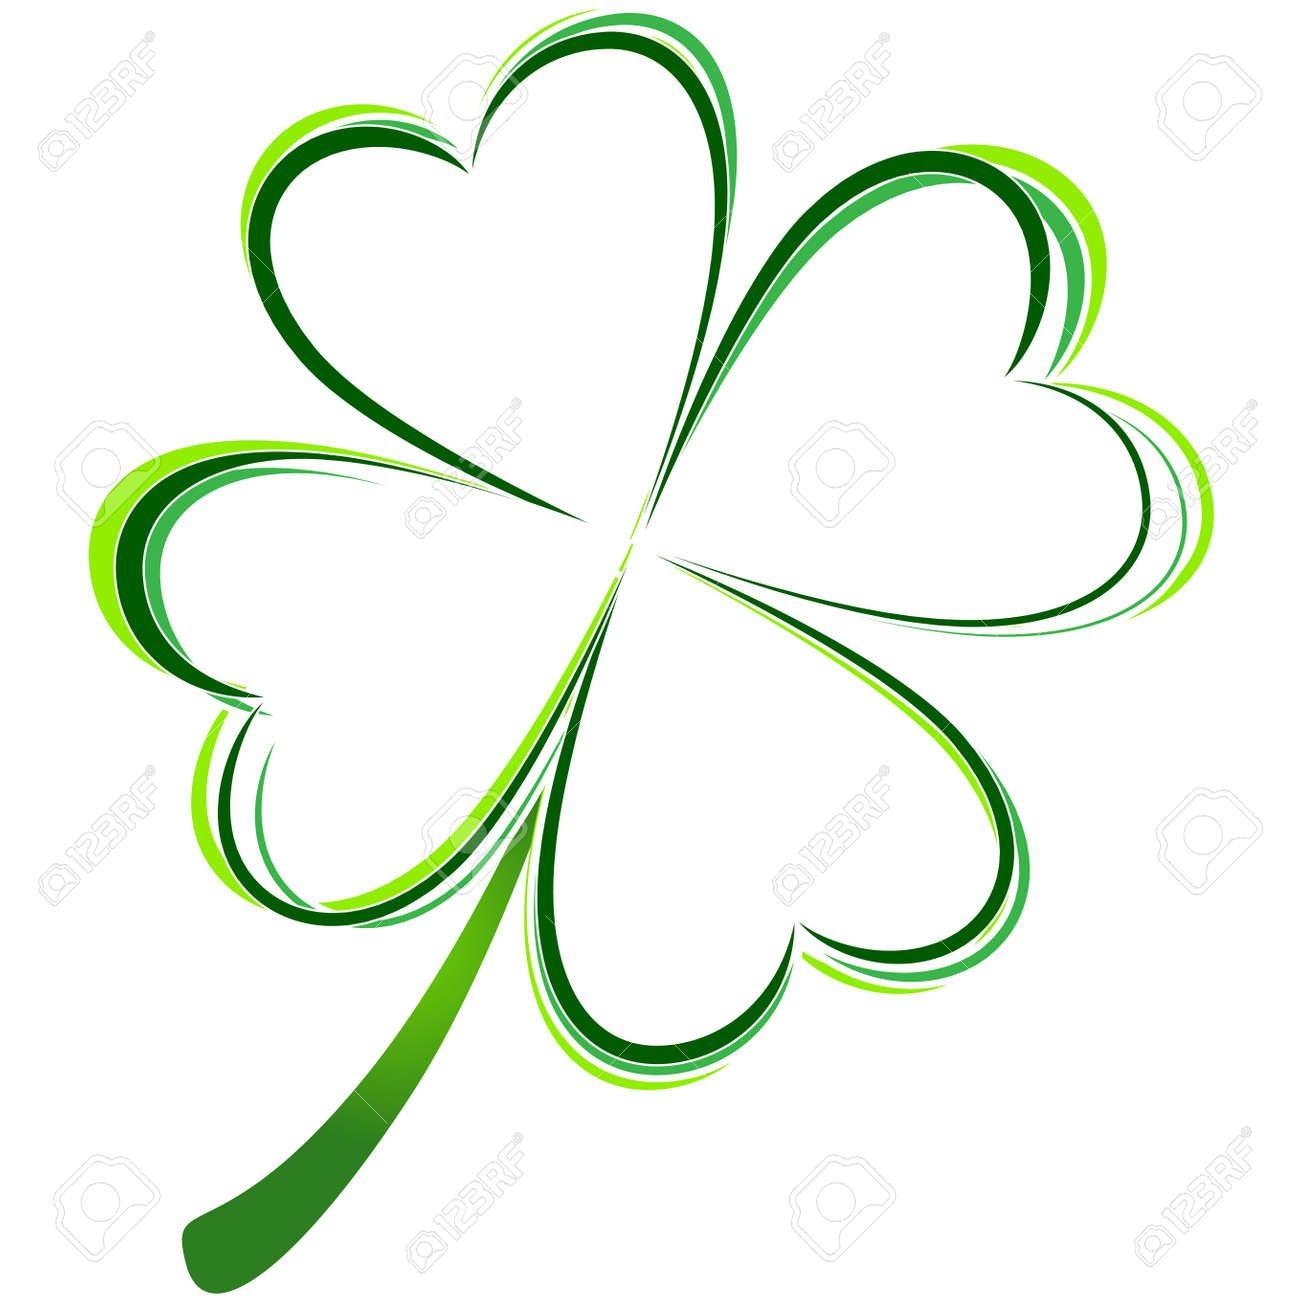 vector illustration of green clover picture royalty free cliparts